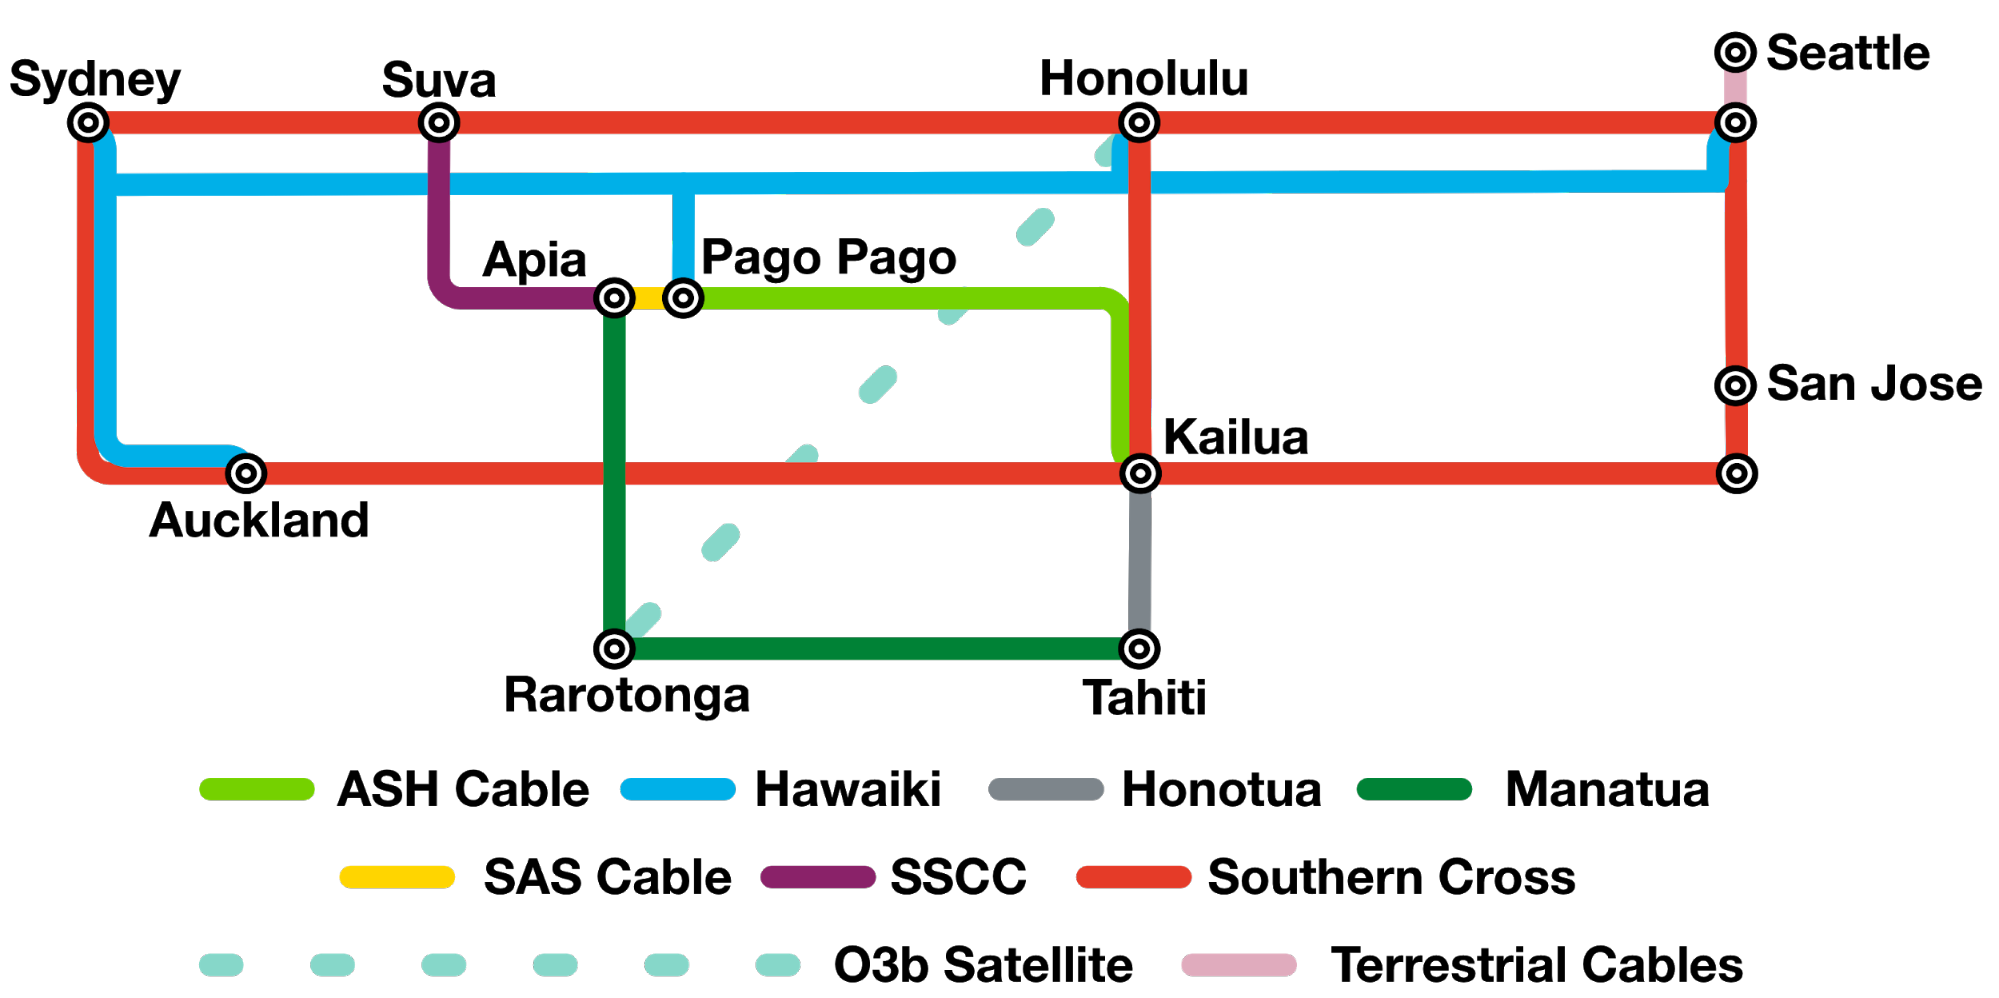 Manatua and its interconnections in the Pacific